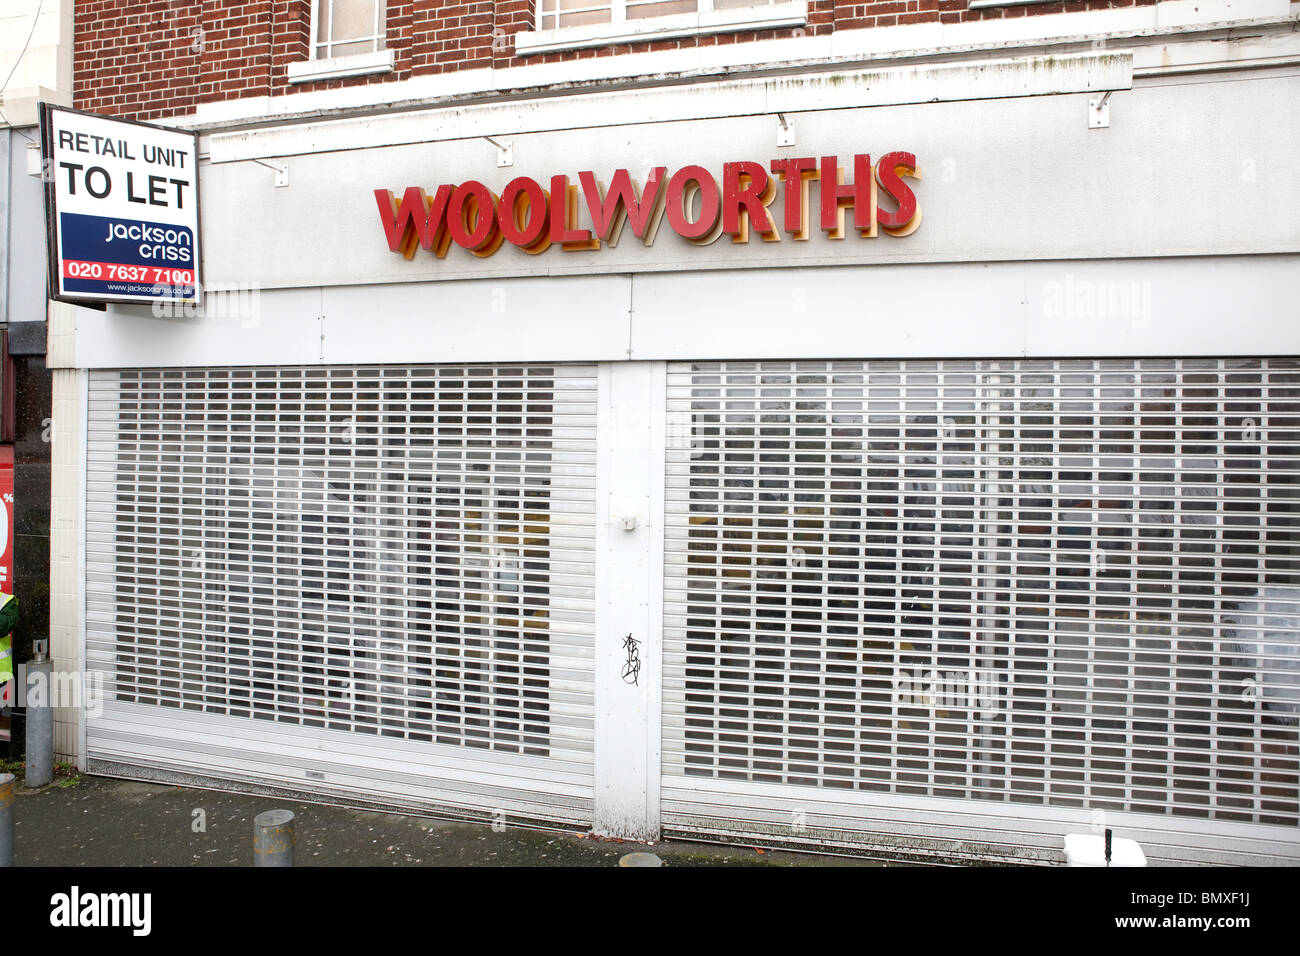 Woolworths Woolworth's Stock Photos & Woolworths Woolworth's